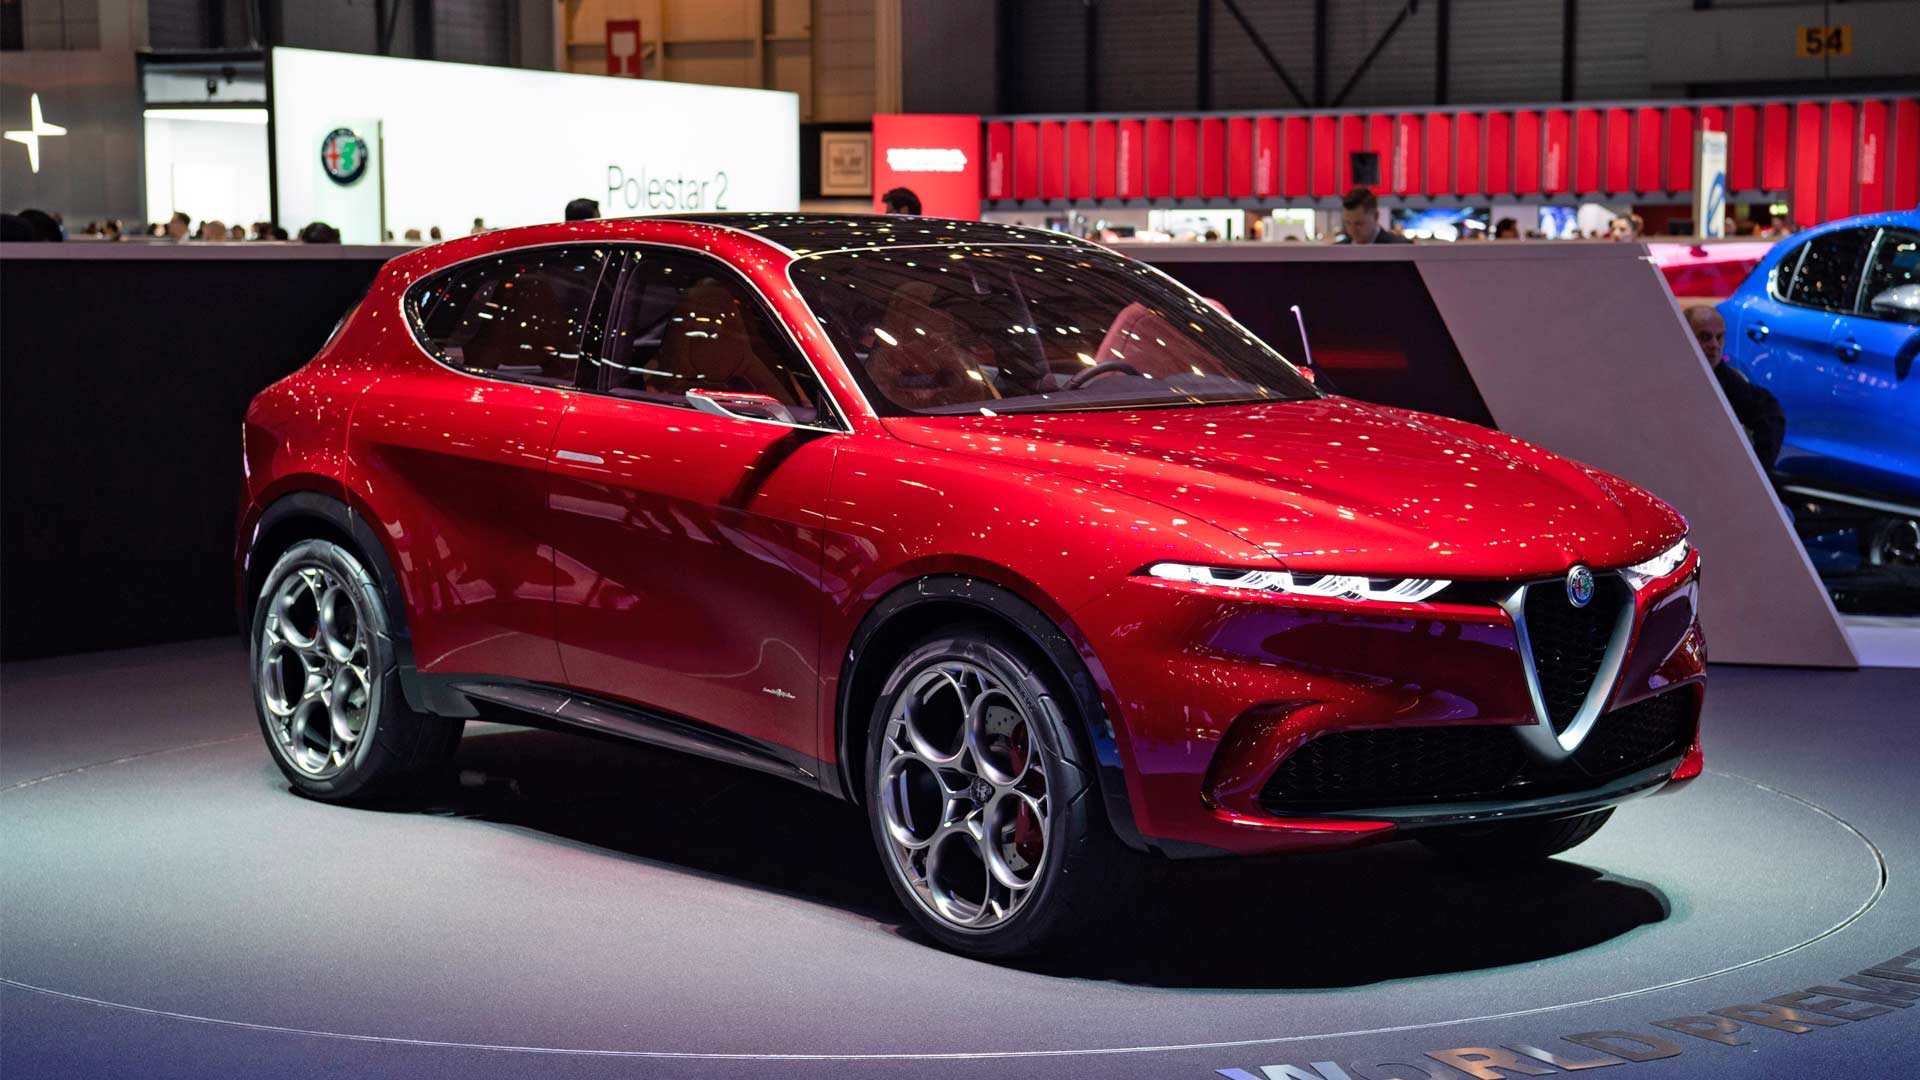 Alfa Romeo to plug-in with Tonale compact SUV - Autodevot